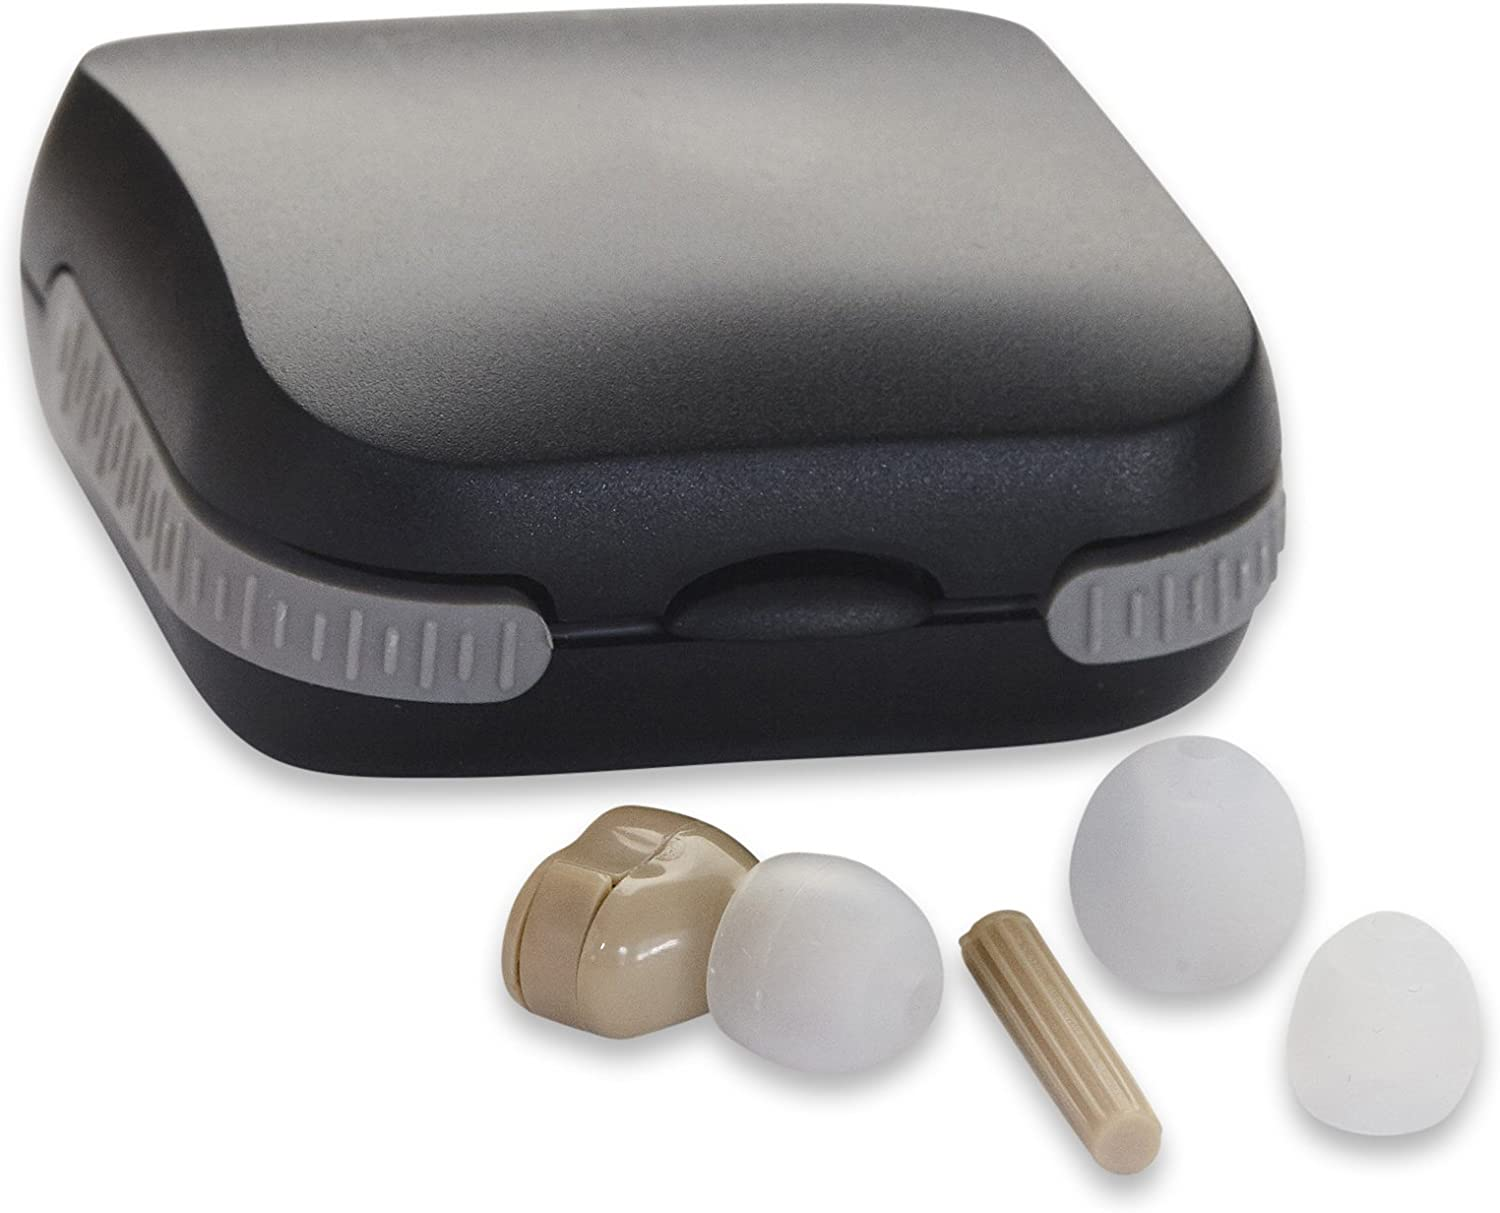 Hearacle discount Ear Amplifier 67% OFF of fixed price Sound